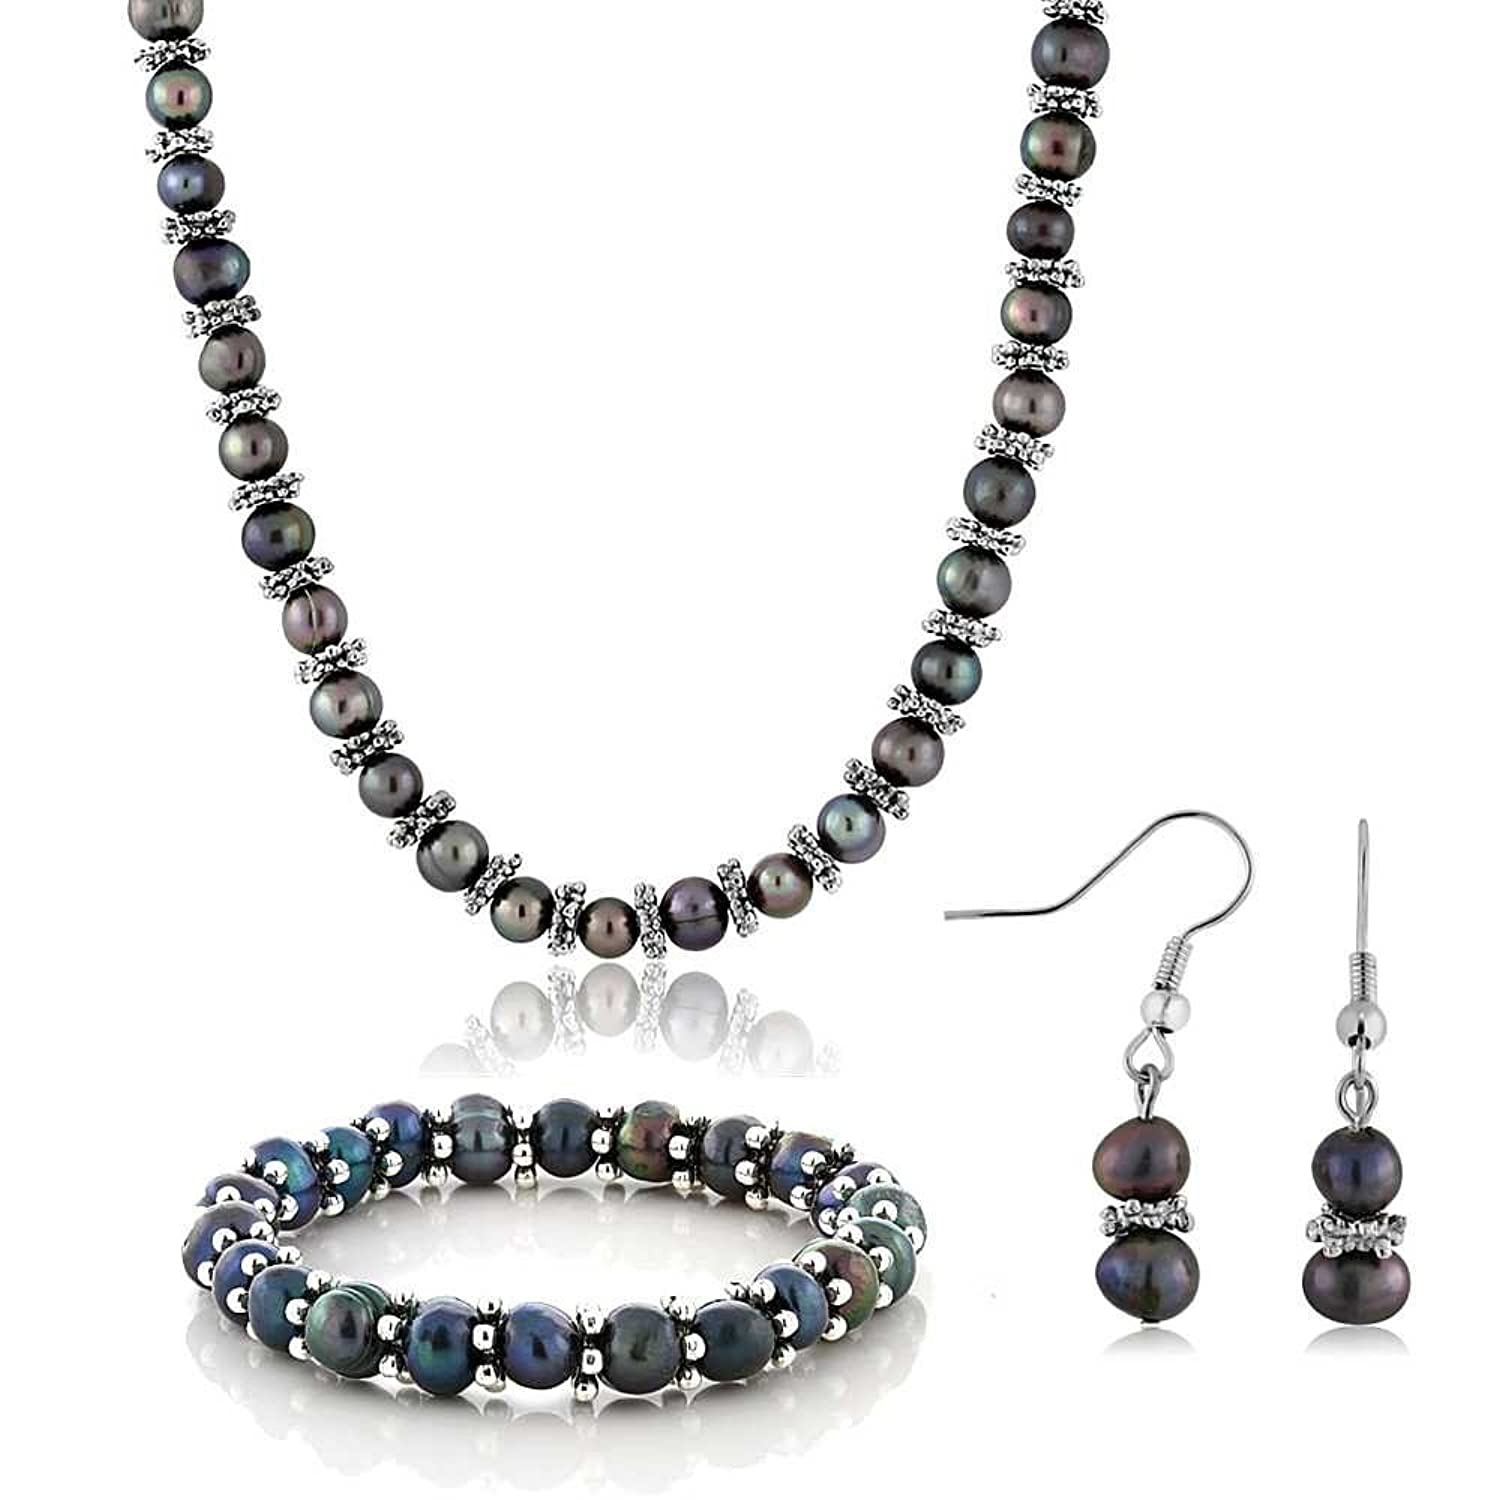 cu necklace balls product pearl with silver pigna shop black tahitian